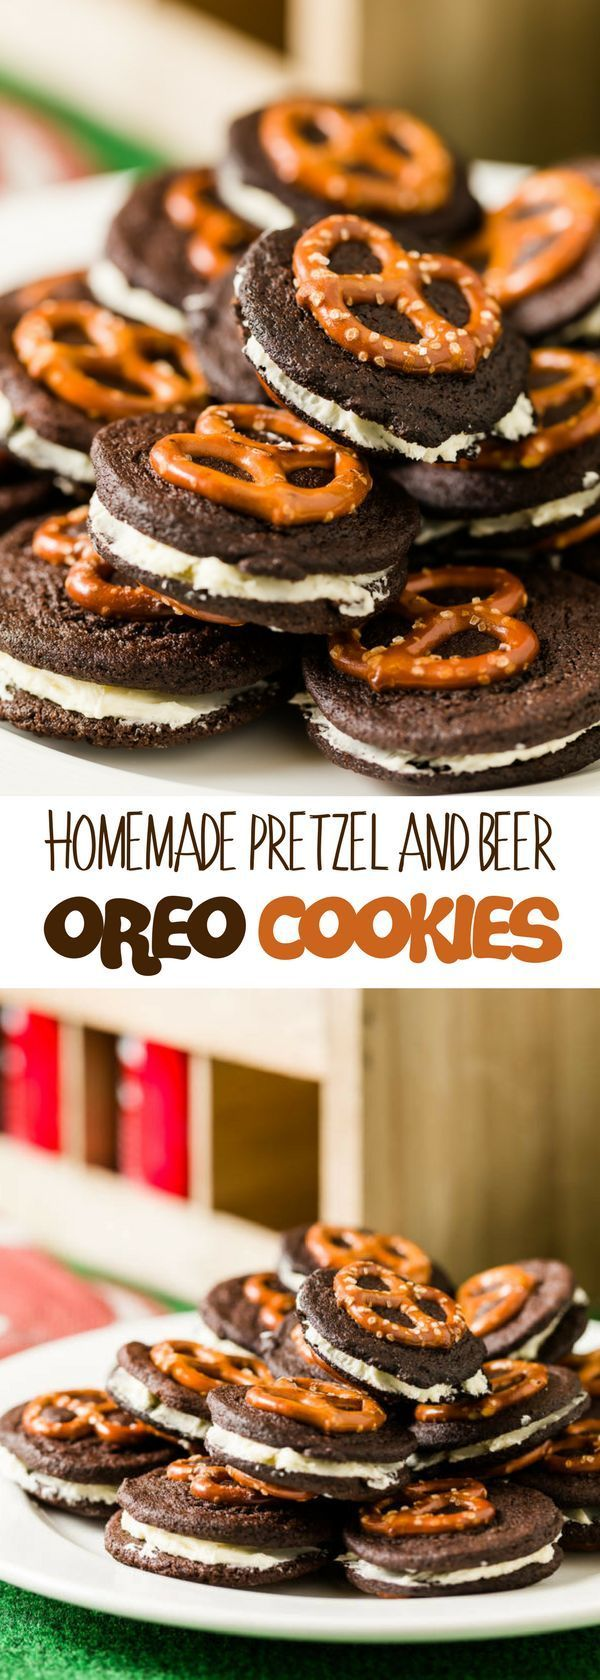 Looking for homemade oreo cookies ideas? This Homemade Pretzel and Beer Oreo Cookies are even better than store-bought ones. The beer in the frosting simply cuts the sweetness, adds a little sour, and brings a just slightly perceptible aroma of foamy lager being poured into a pint glass. For more simple baking desserts recipes and homemade sweet treats, check us out at #cupcakeproject. #desserts #yummydesserts #recipeoftheday #sweettooth